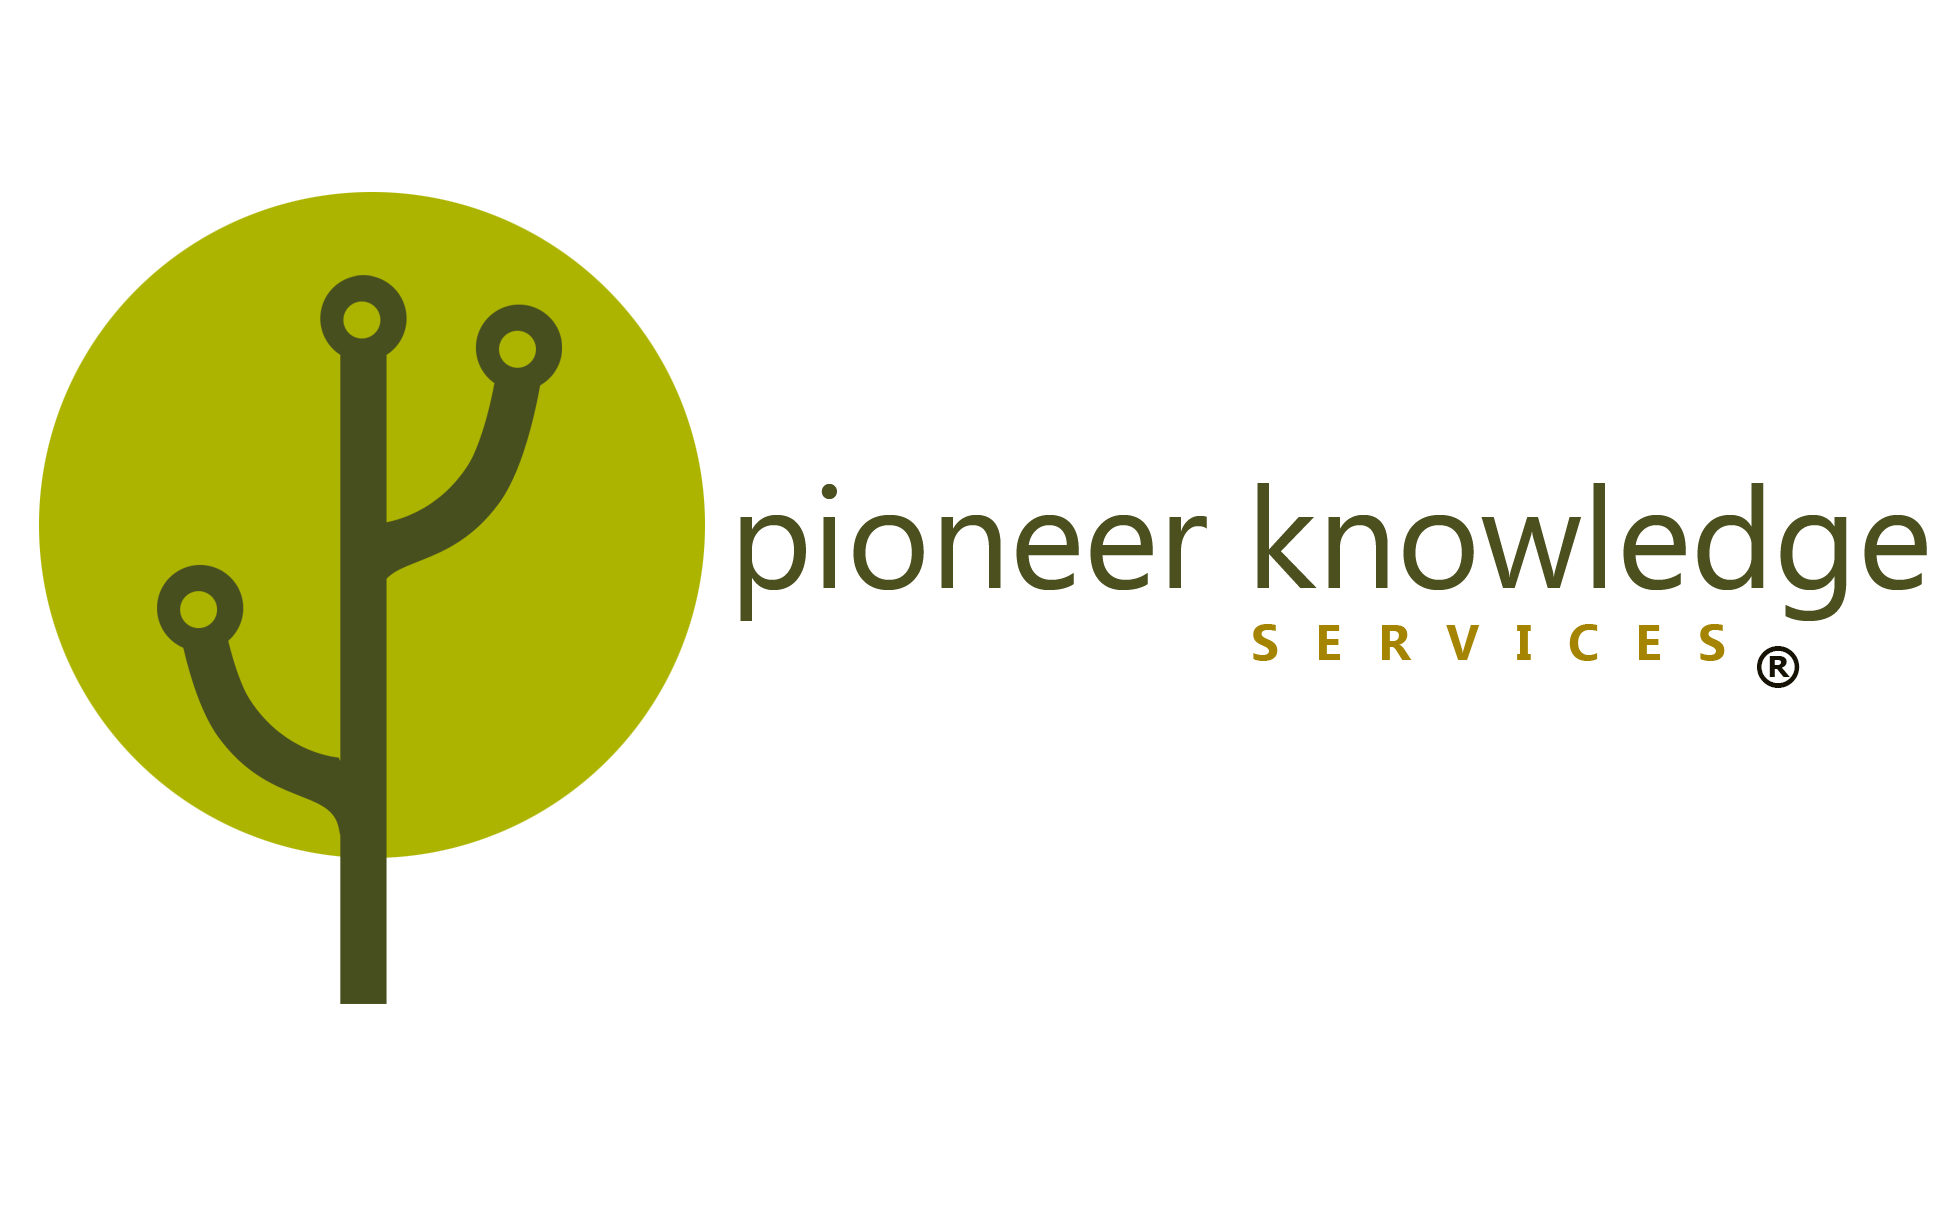 Pioneer Knowledge Services